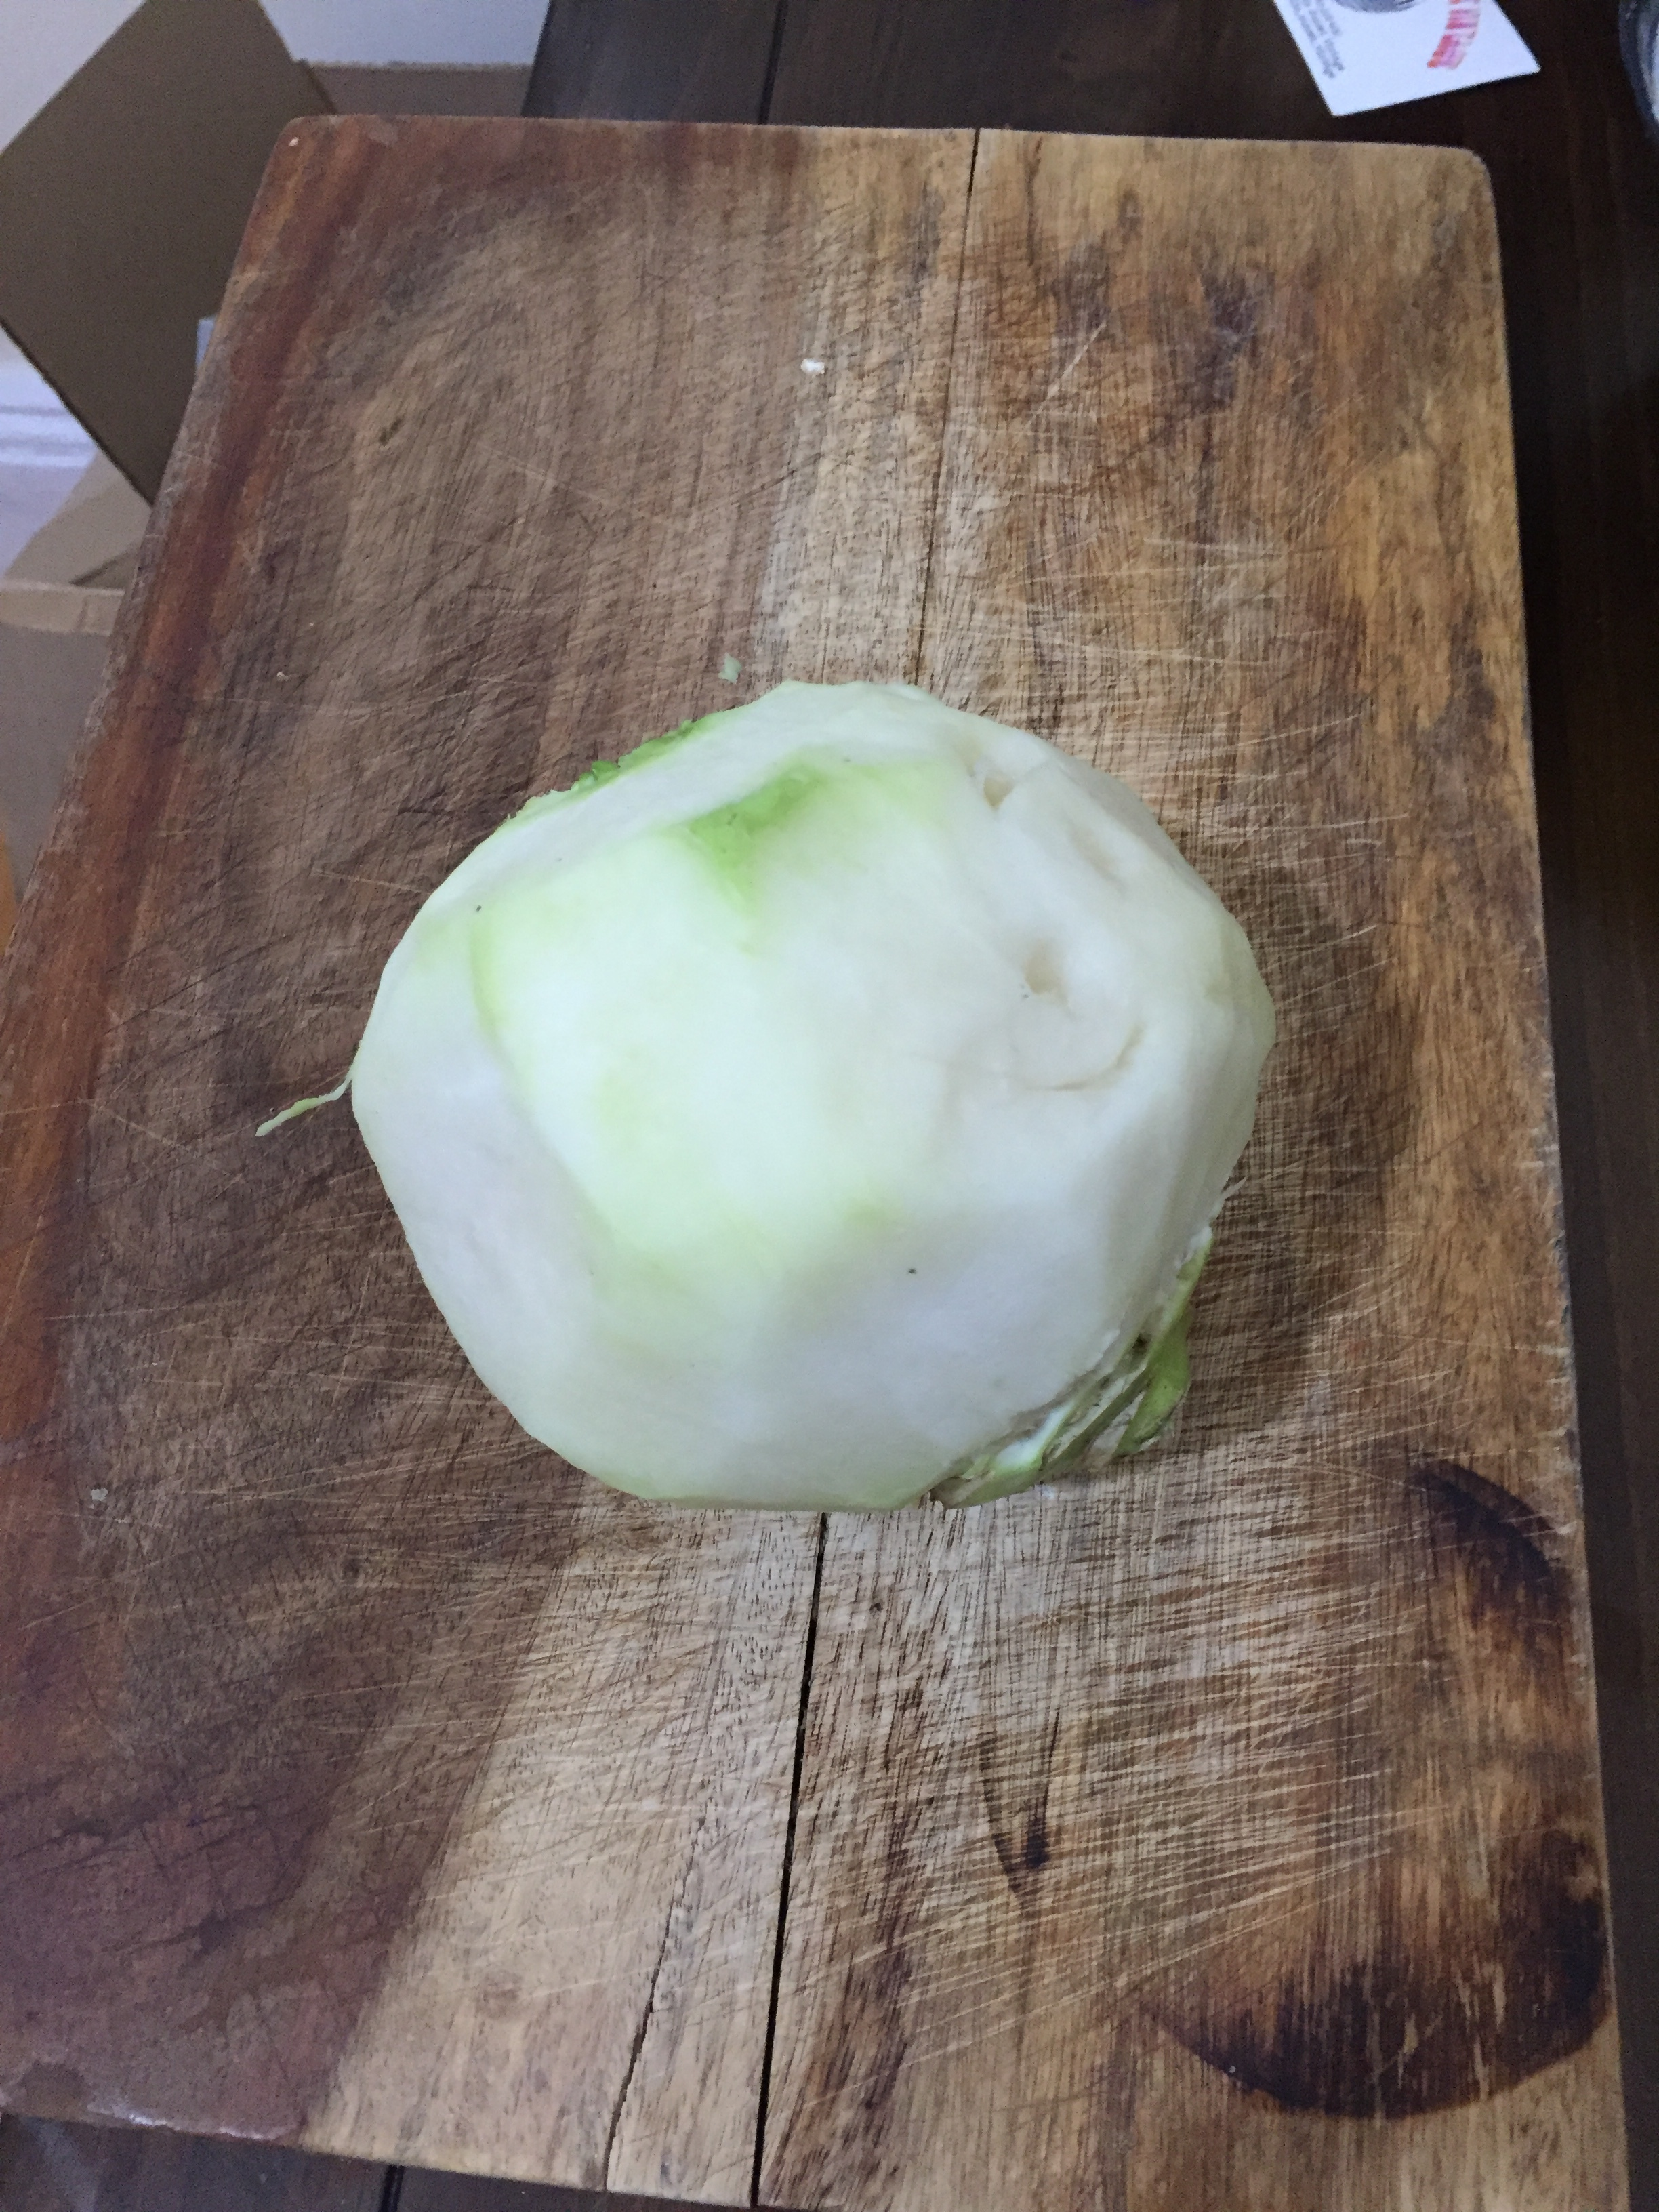 Cut the Kohlrabi into pieces. Put the pieces in a mixing bowl with olive oil. garlic, salt and pepper. Mix the pieces thoroughly and then place on a sheet tray and/or in a baking dish.